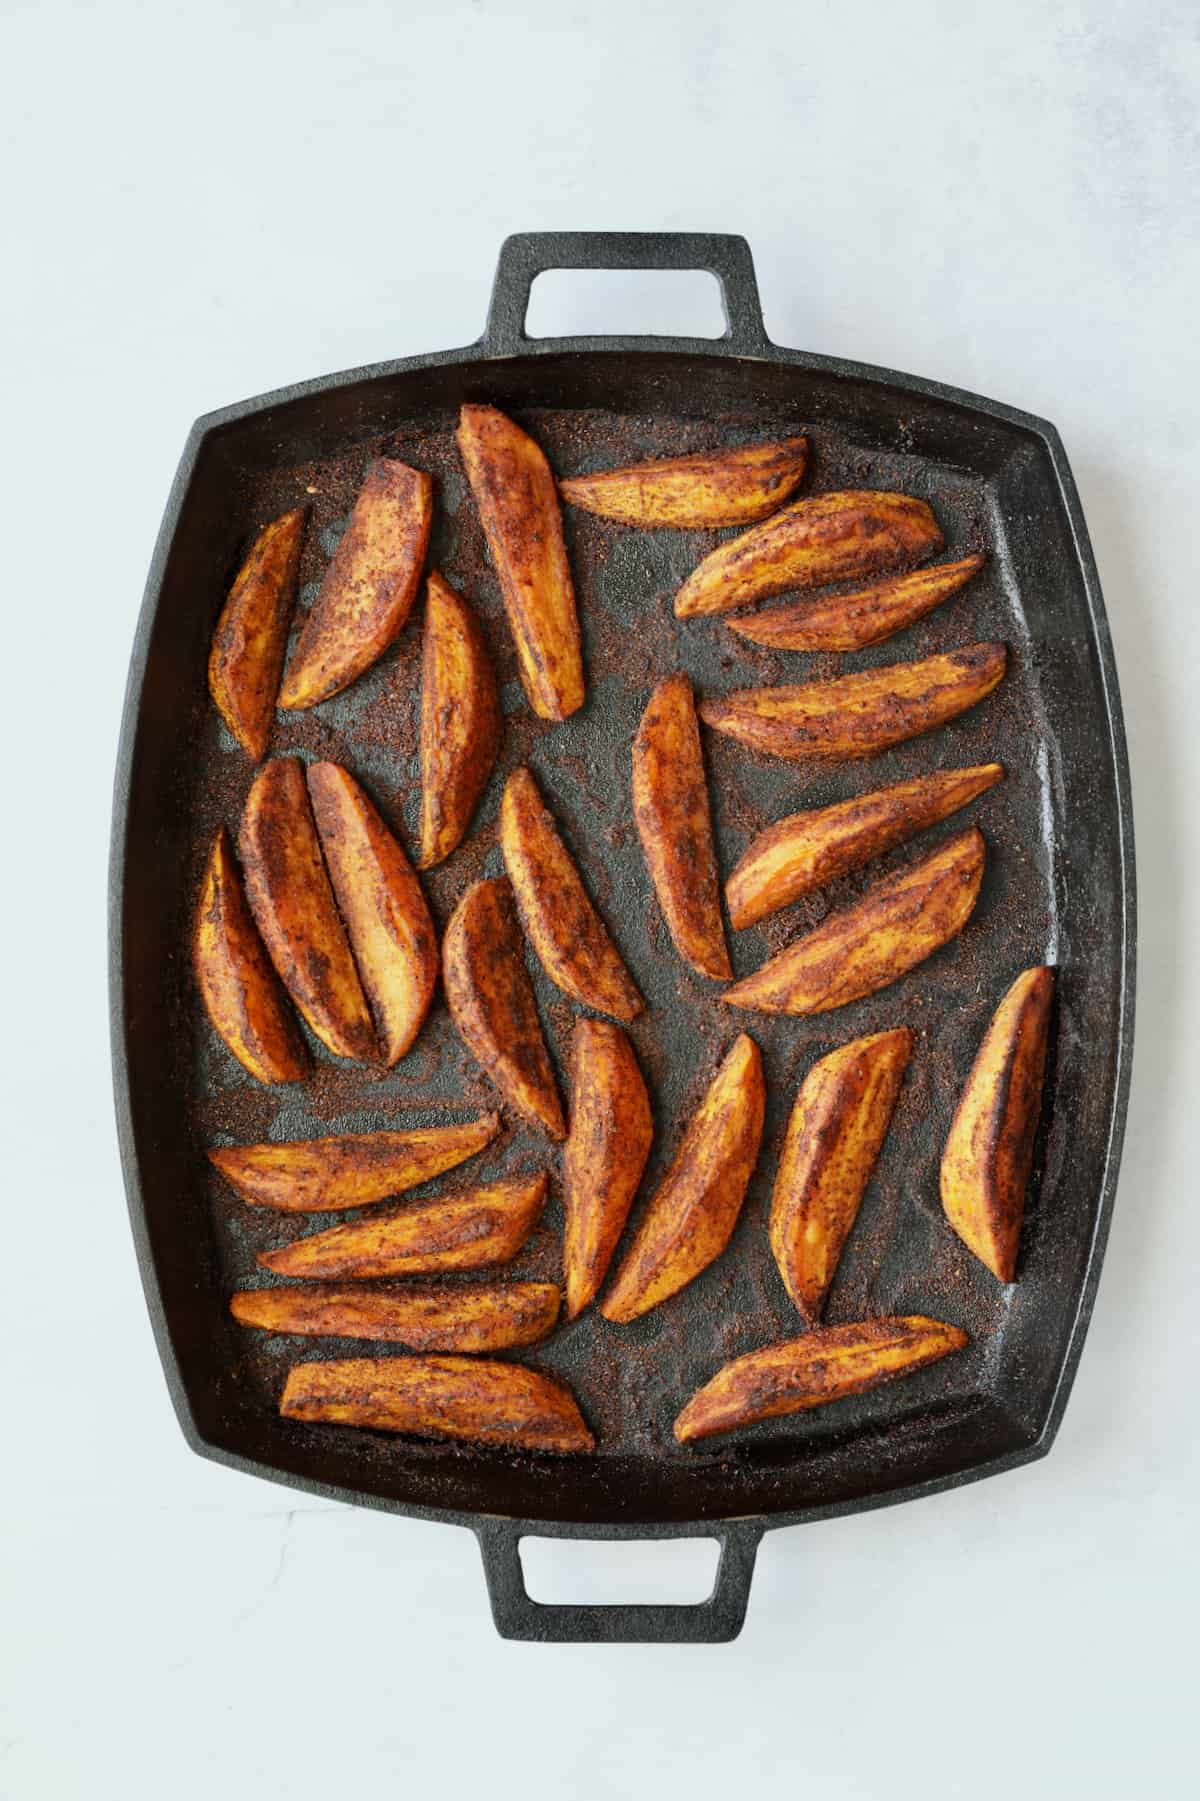 Southwestern Sweet Potato Wedges on cast iron pan after being roasted.